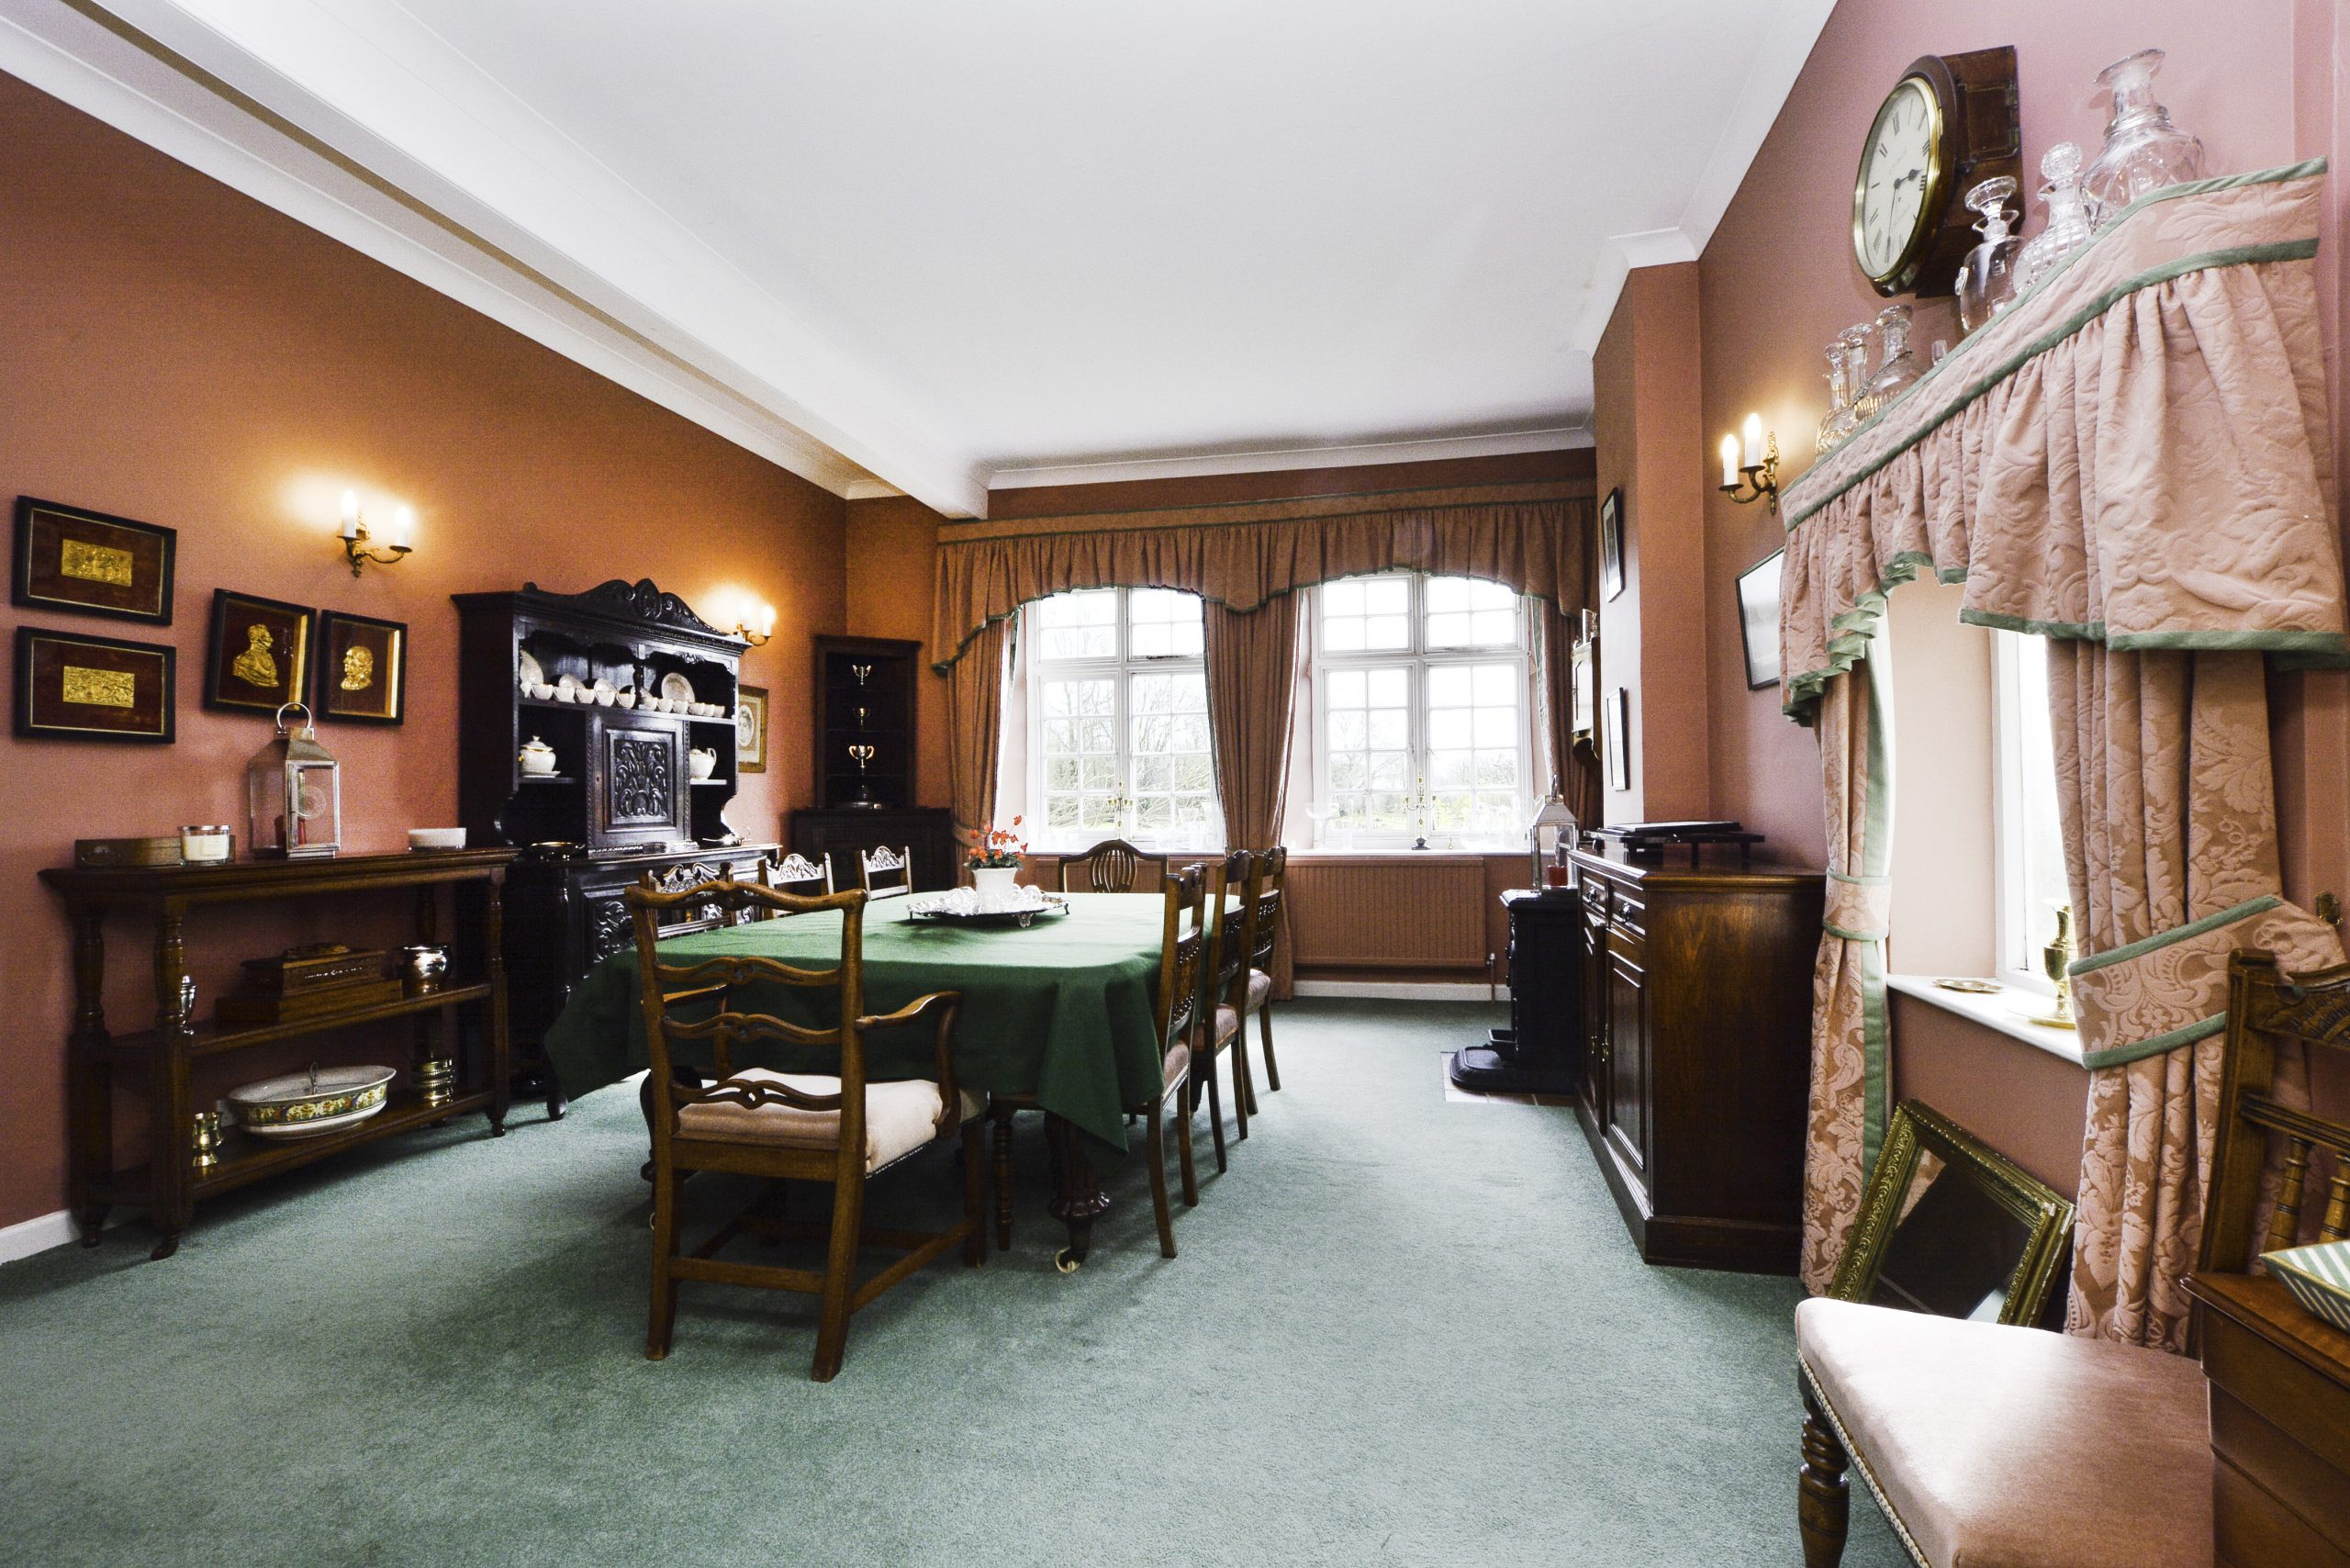 The Old School Bed and Breakfast Dining Room